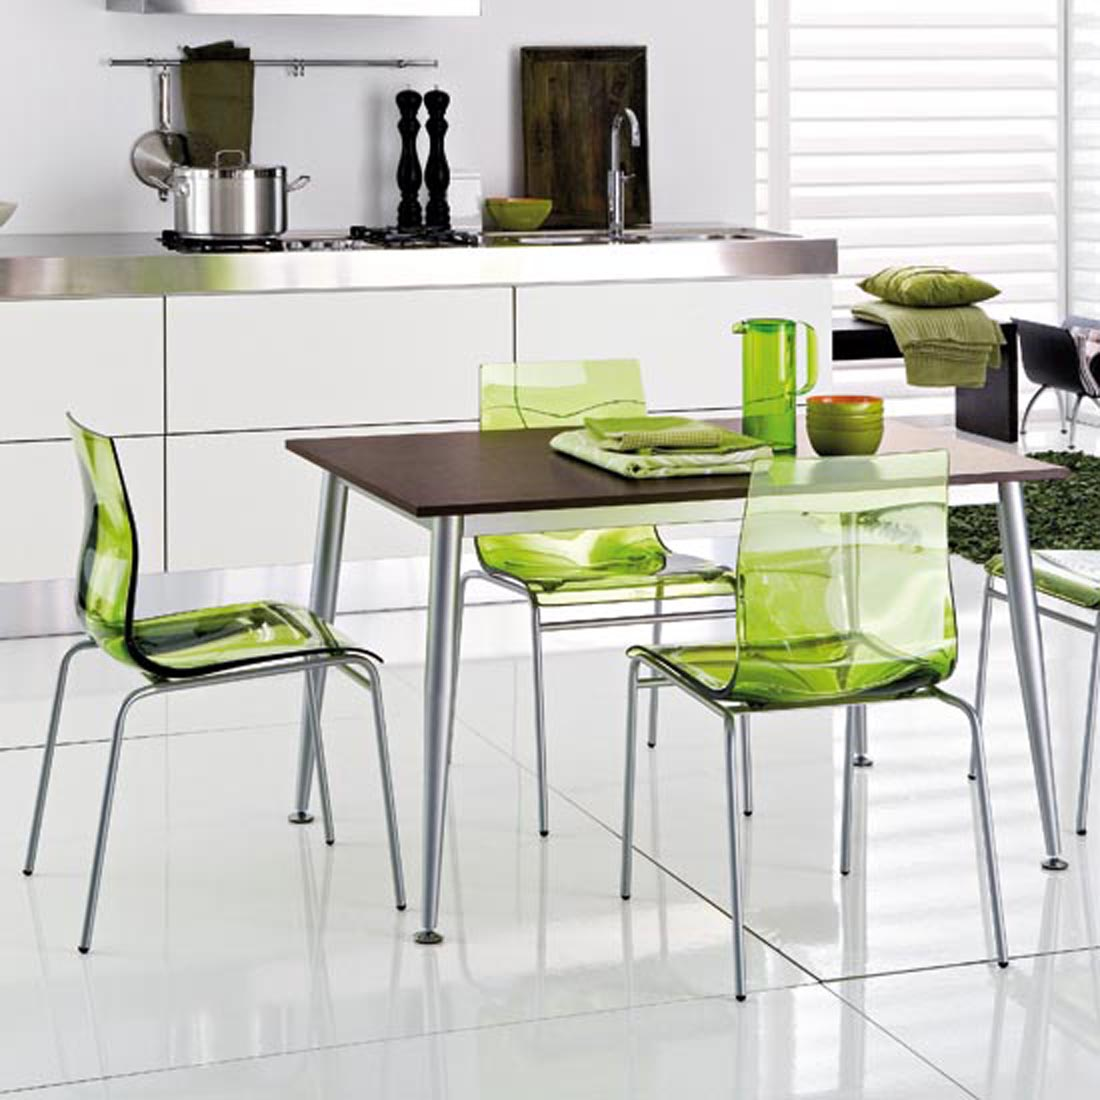 kitchen chairs green photo - 4